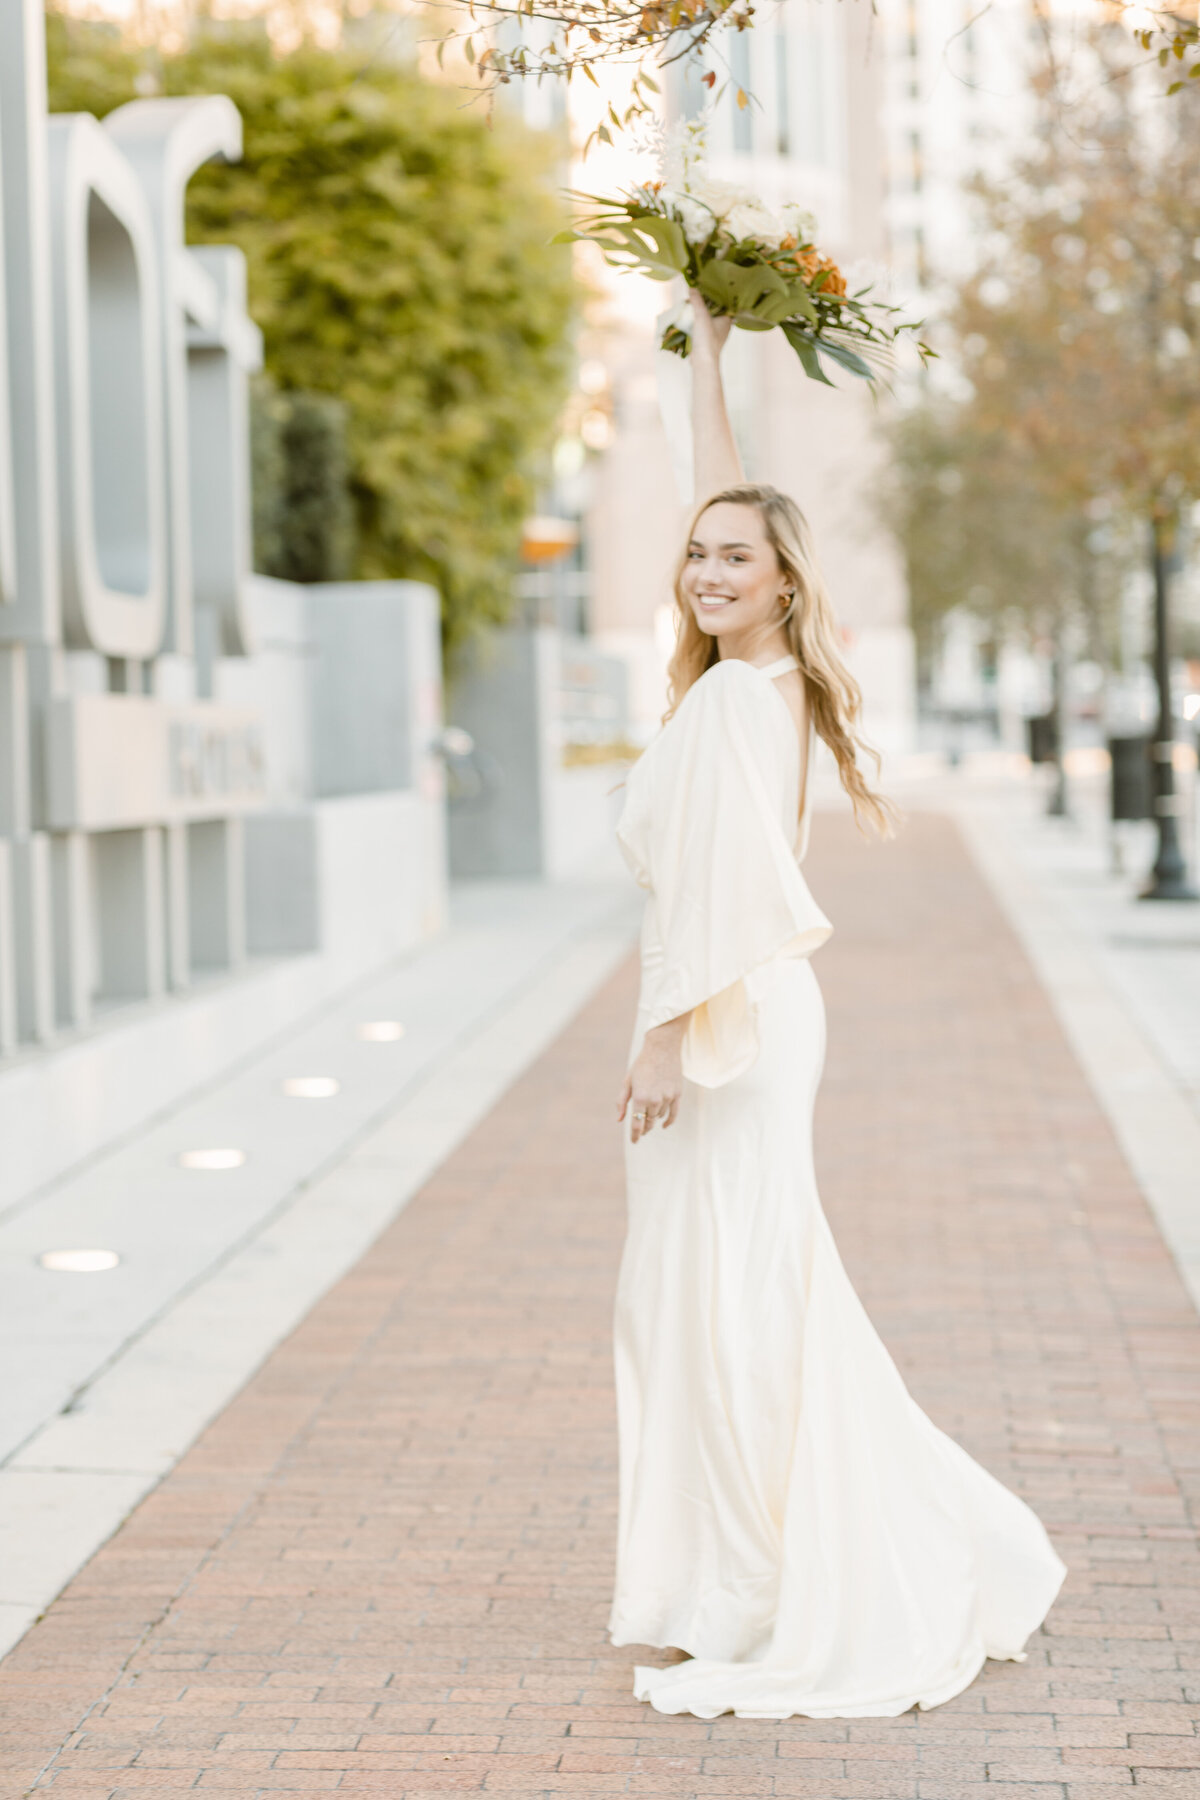 Orlando Bridal Portrait Photography 40